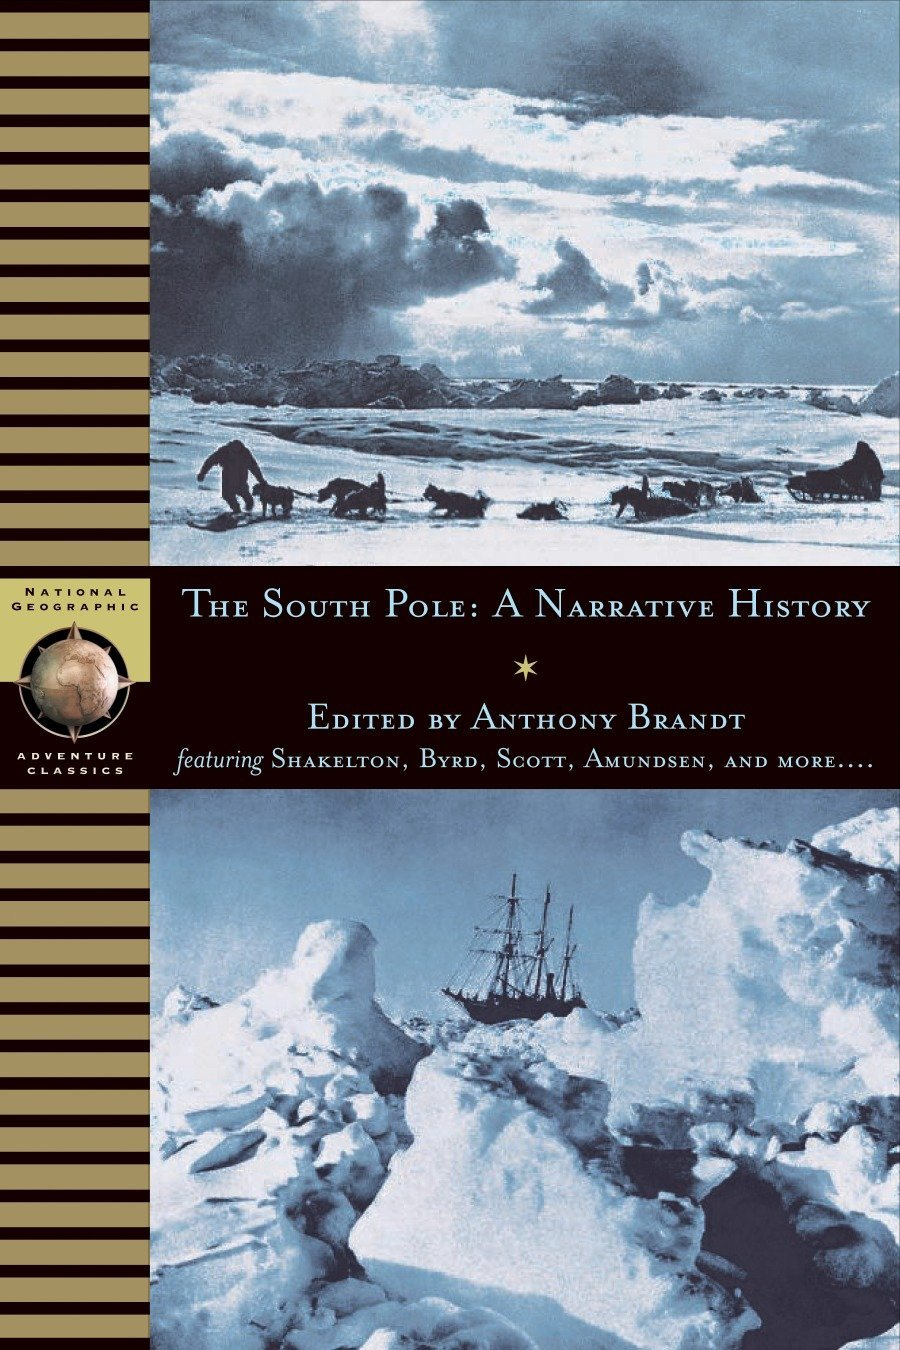 Download The South Pole: A Narrative History of the Exploration of Antarctica (National Geographic Adventure Classics) pdf epub